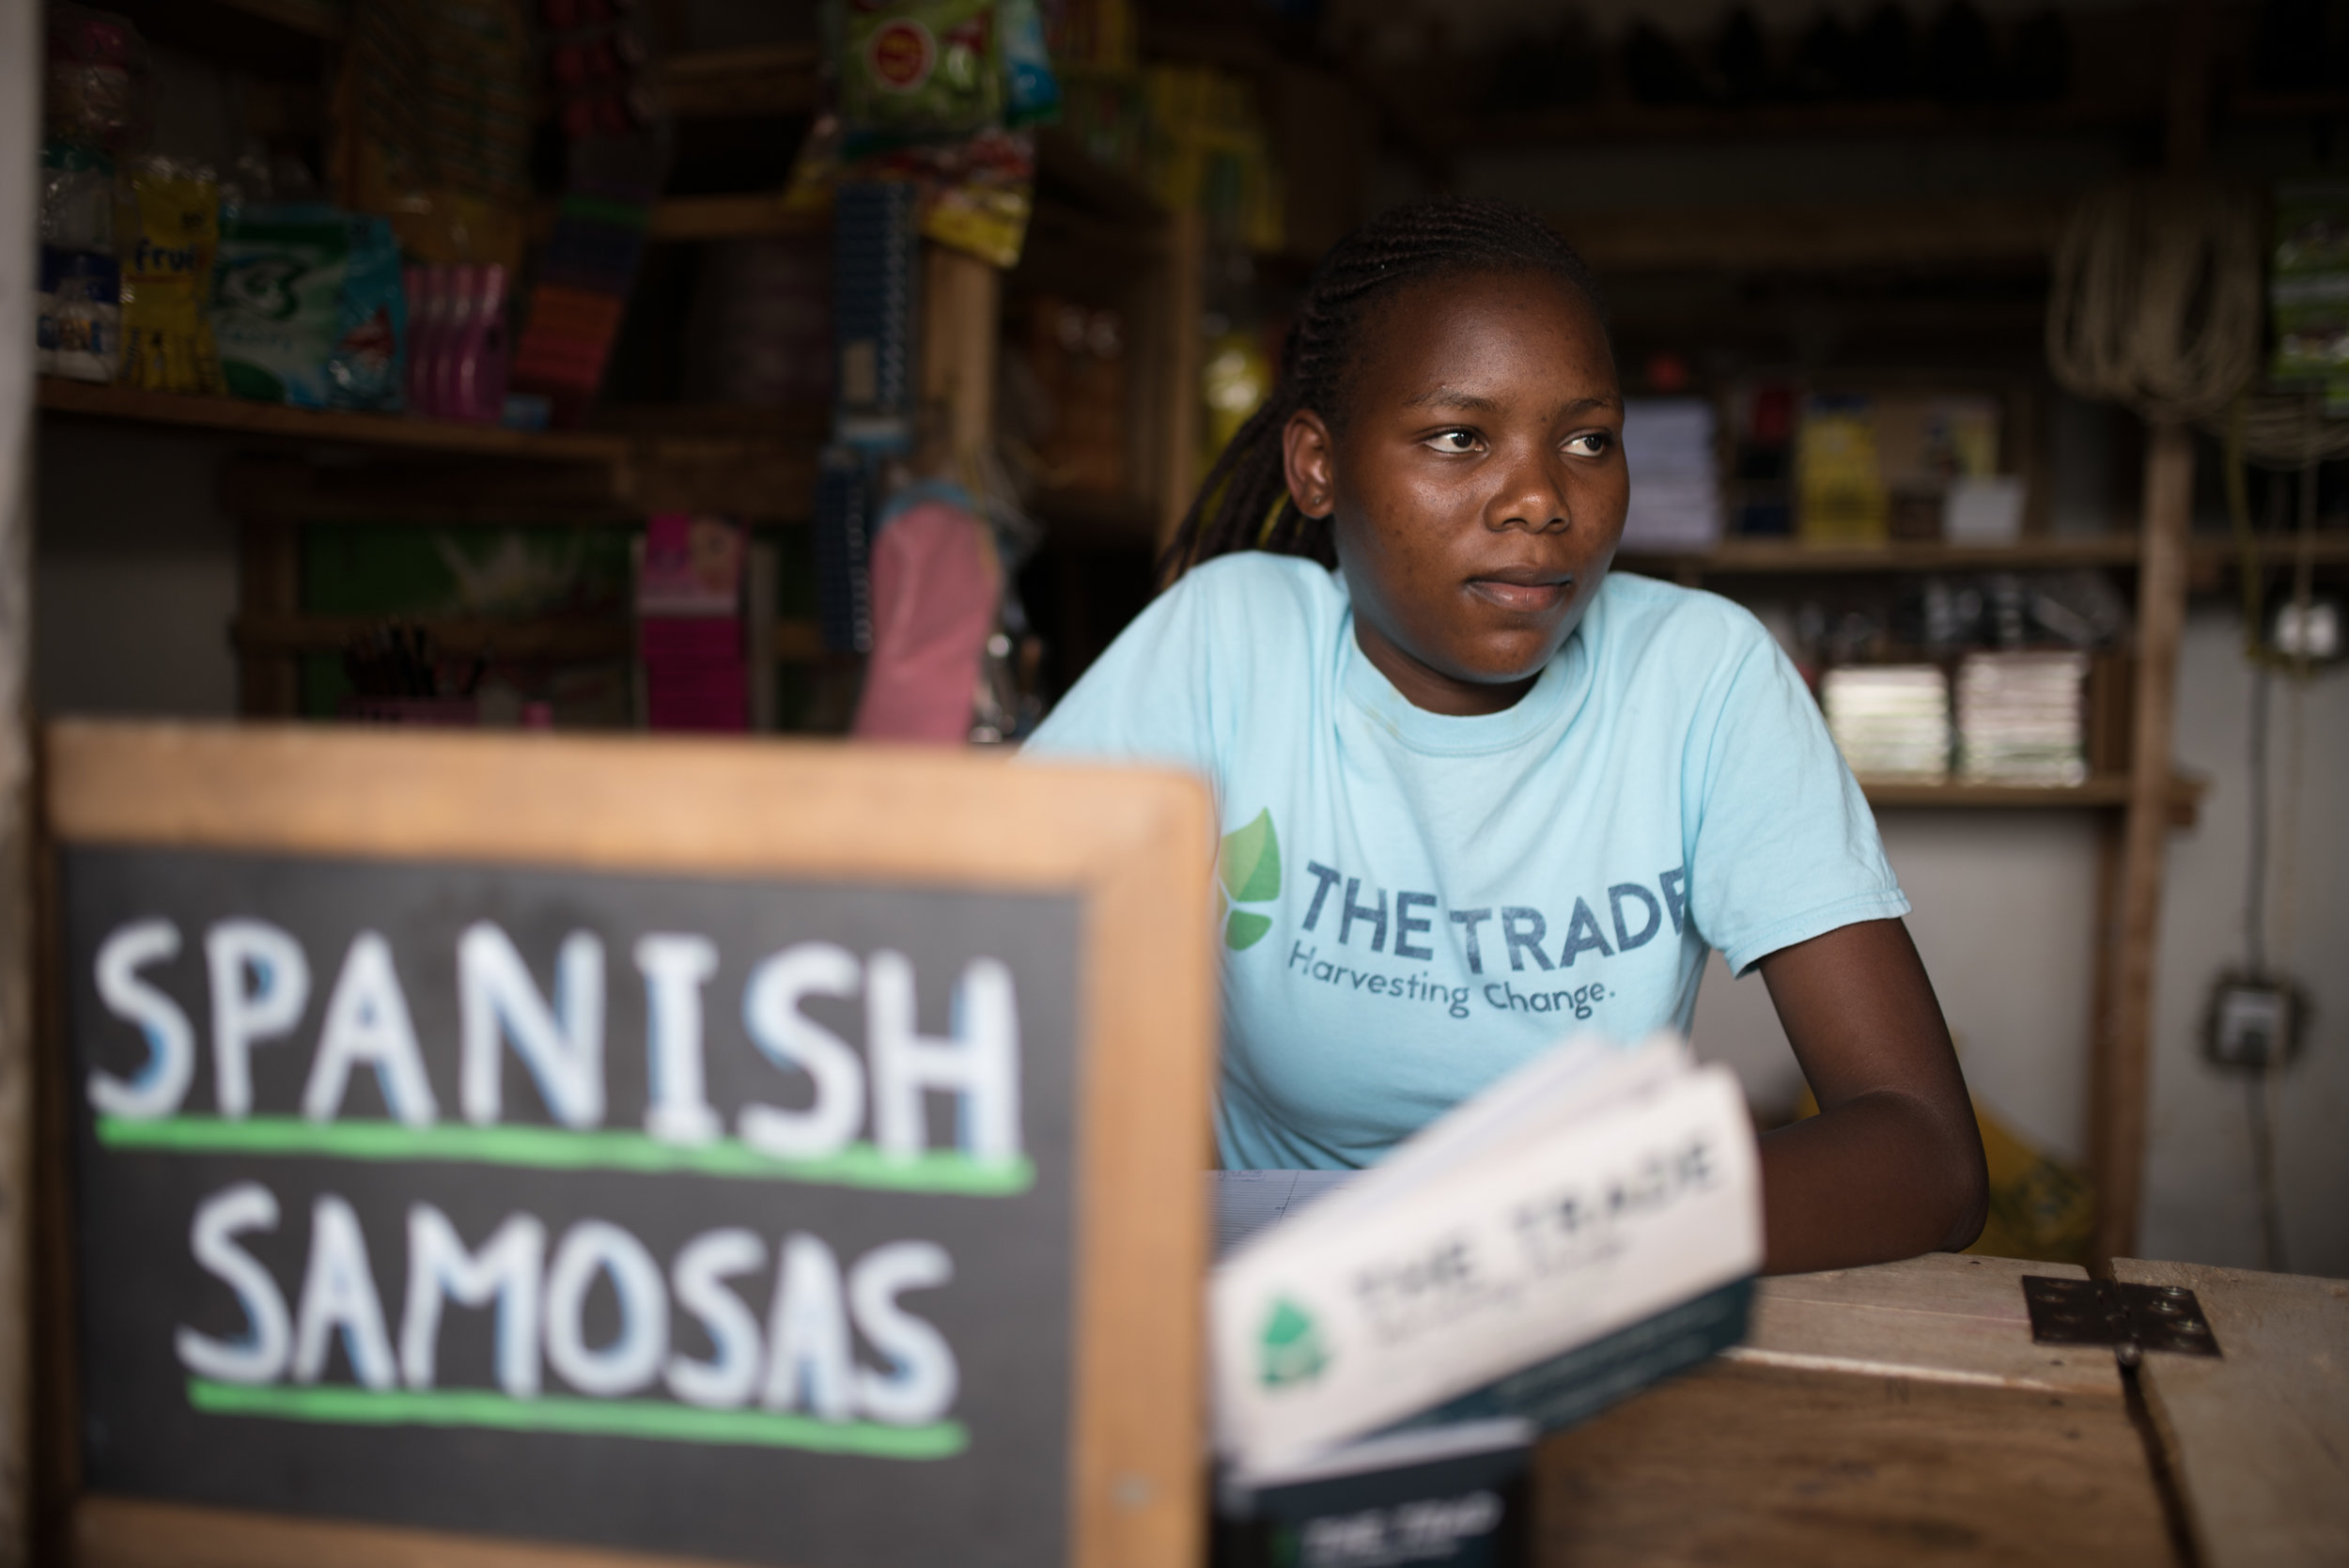 Spanish Samosas featured at  The Trade . The store provides jobs for Institute for G.O.D. East Africa students like Sarah. All while teaching the students how this kind of economy is healthy for the residents of their community.